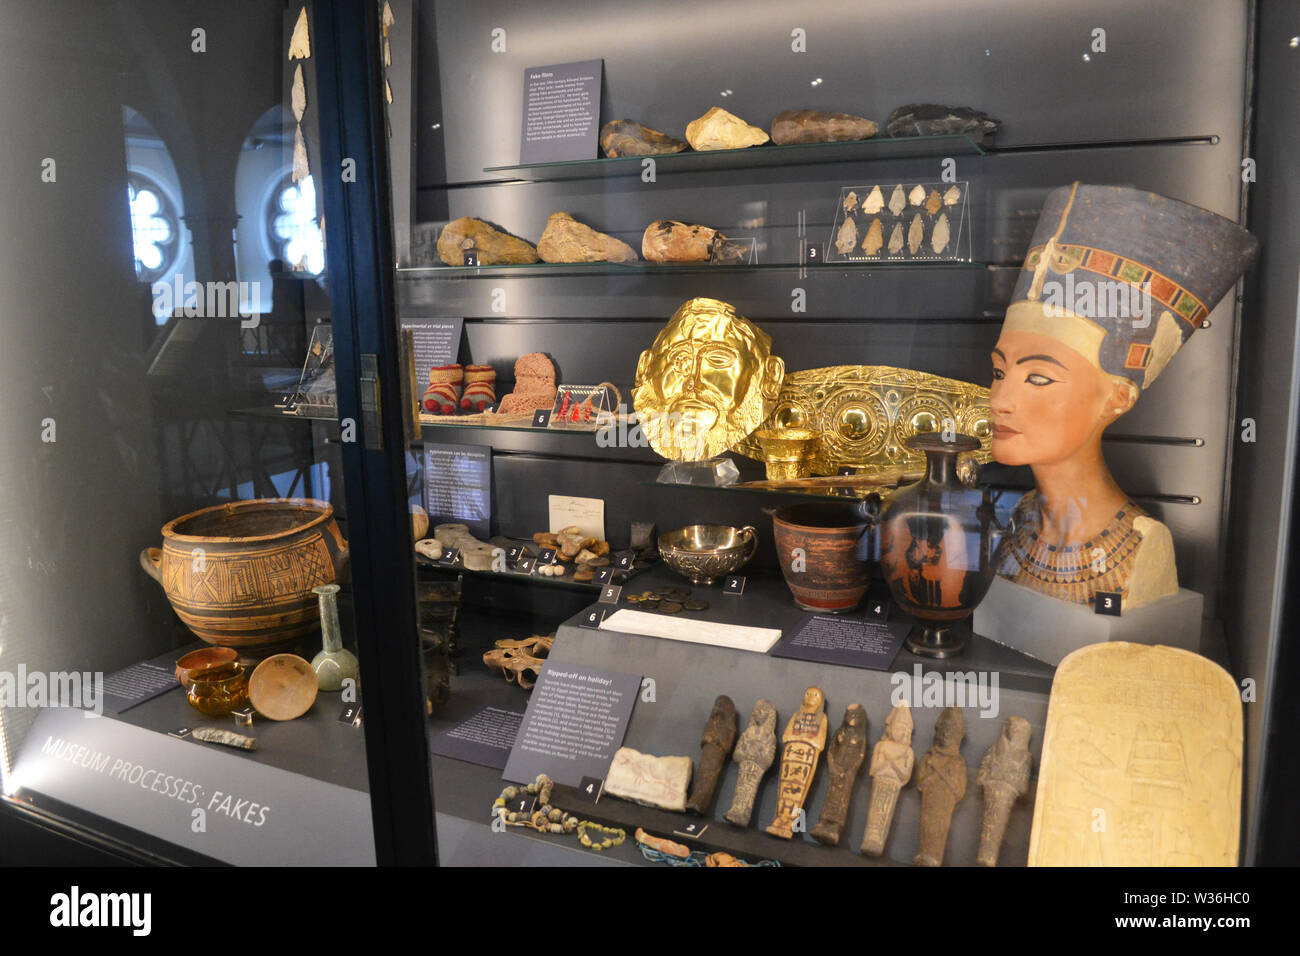 Display of fake artefacts at Manchester Museum, UK. Part of the University of Manchester - Stock Image